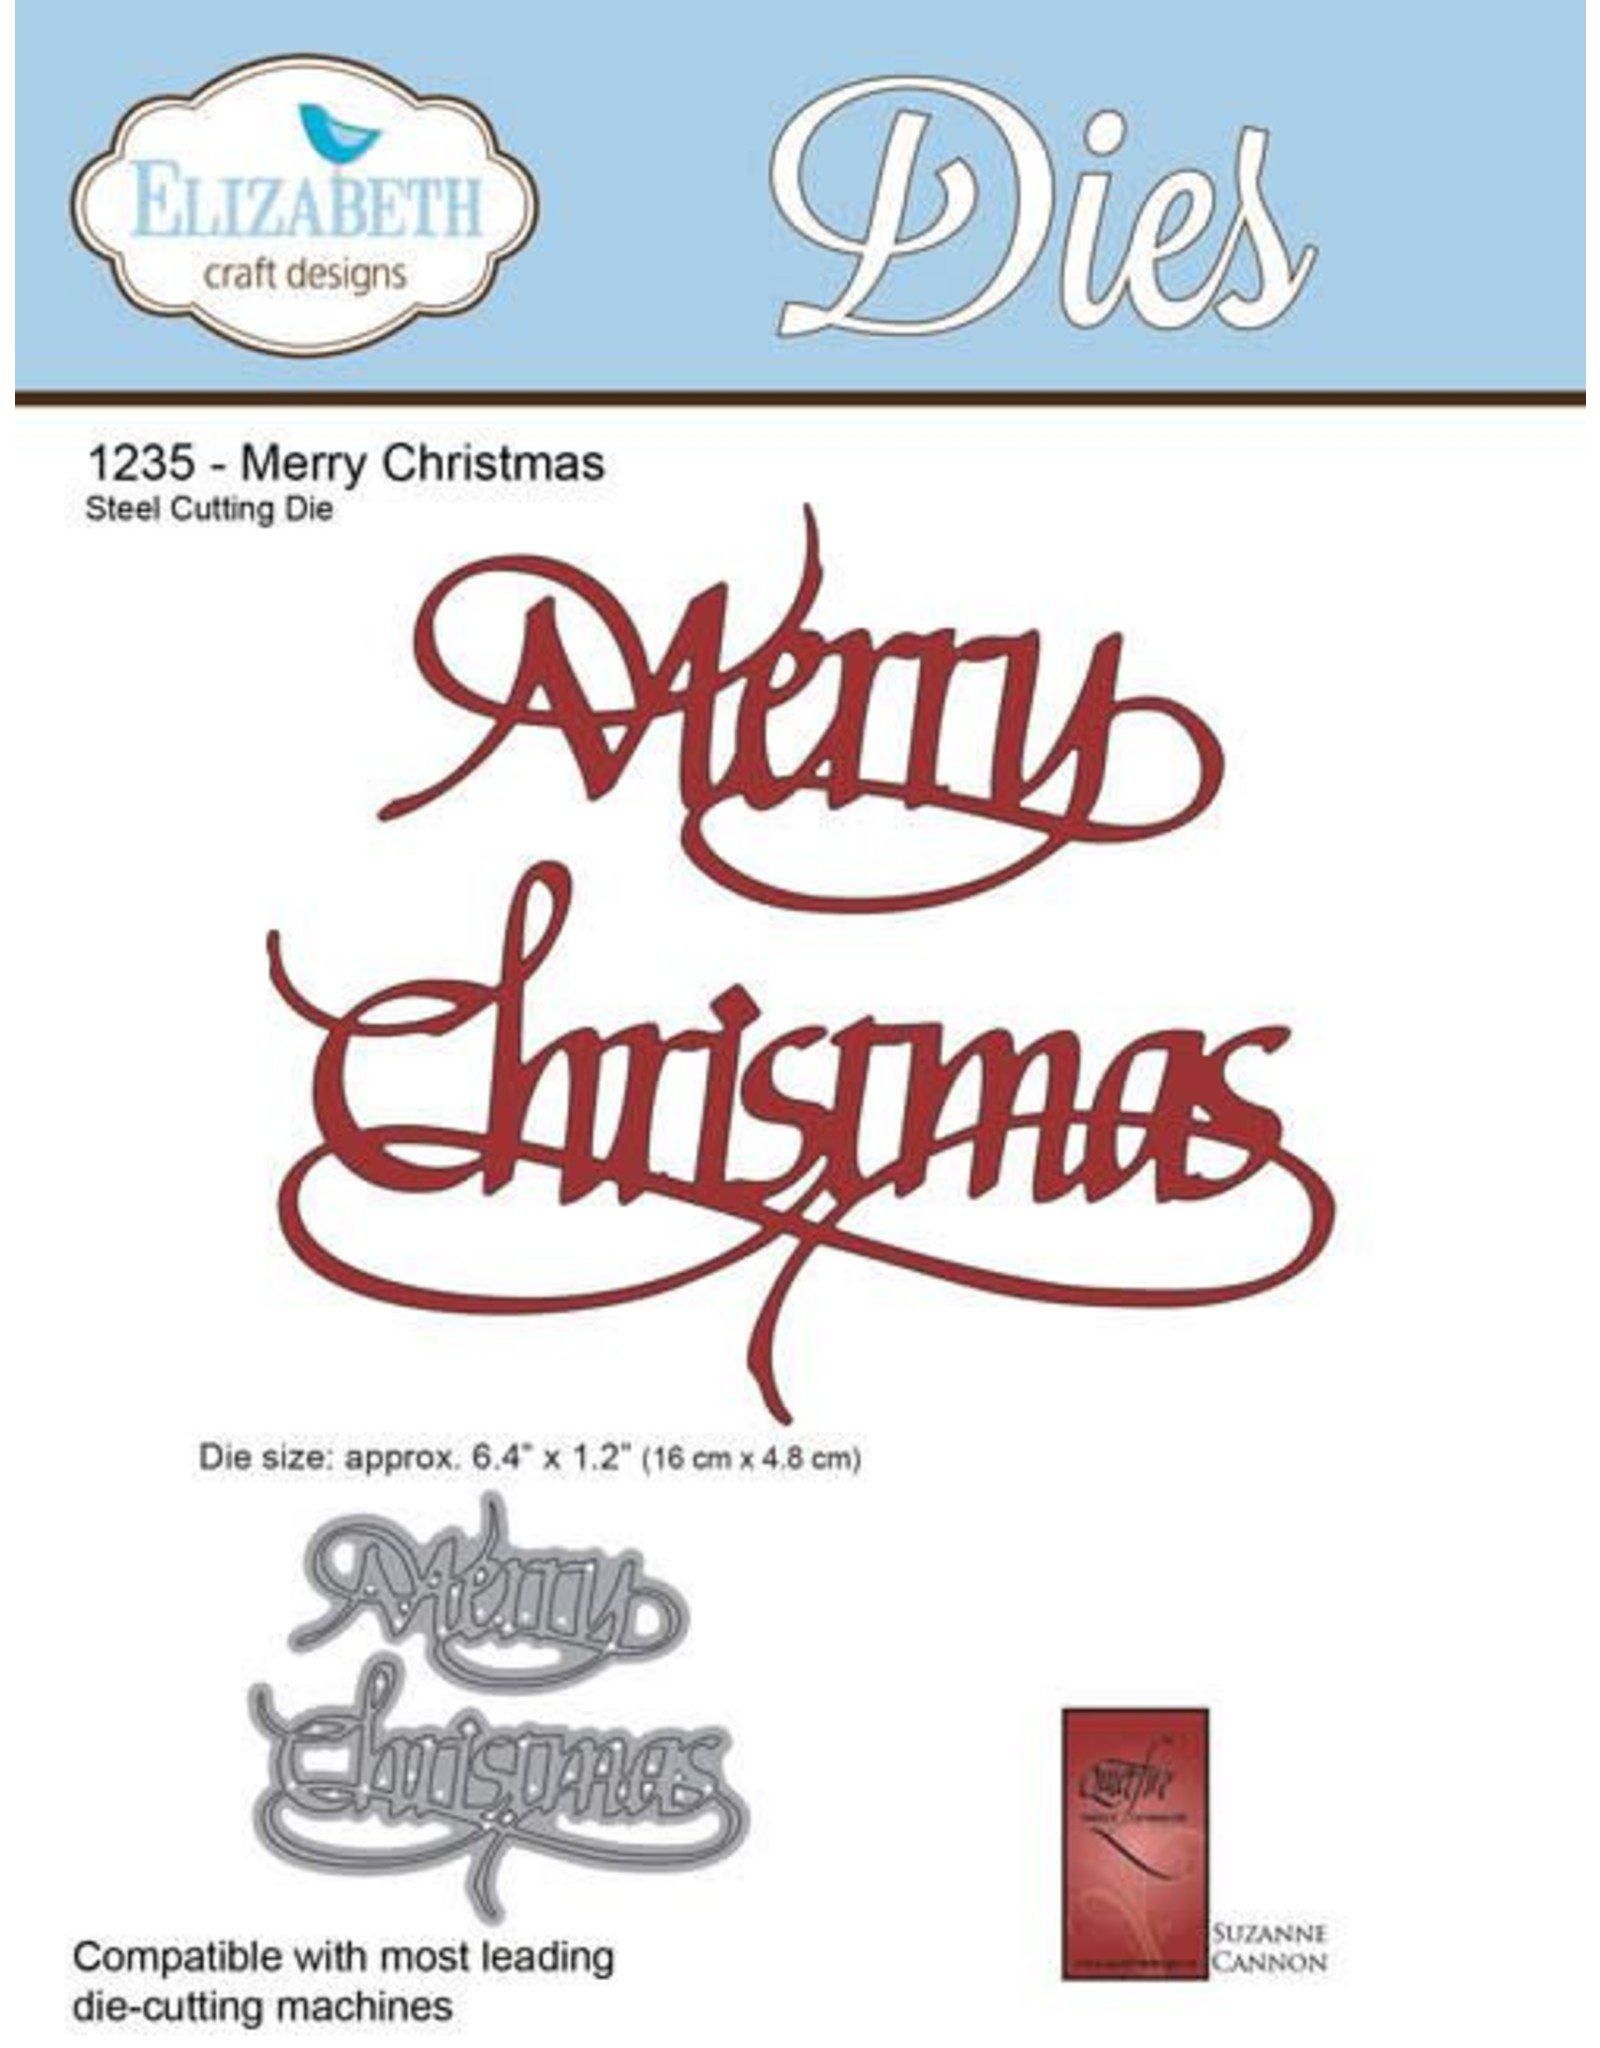 Elizabeth Craft Designs Elizabeth Craft Designs dies A Way With Words, Merry Christmas 1235